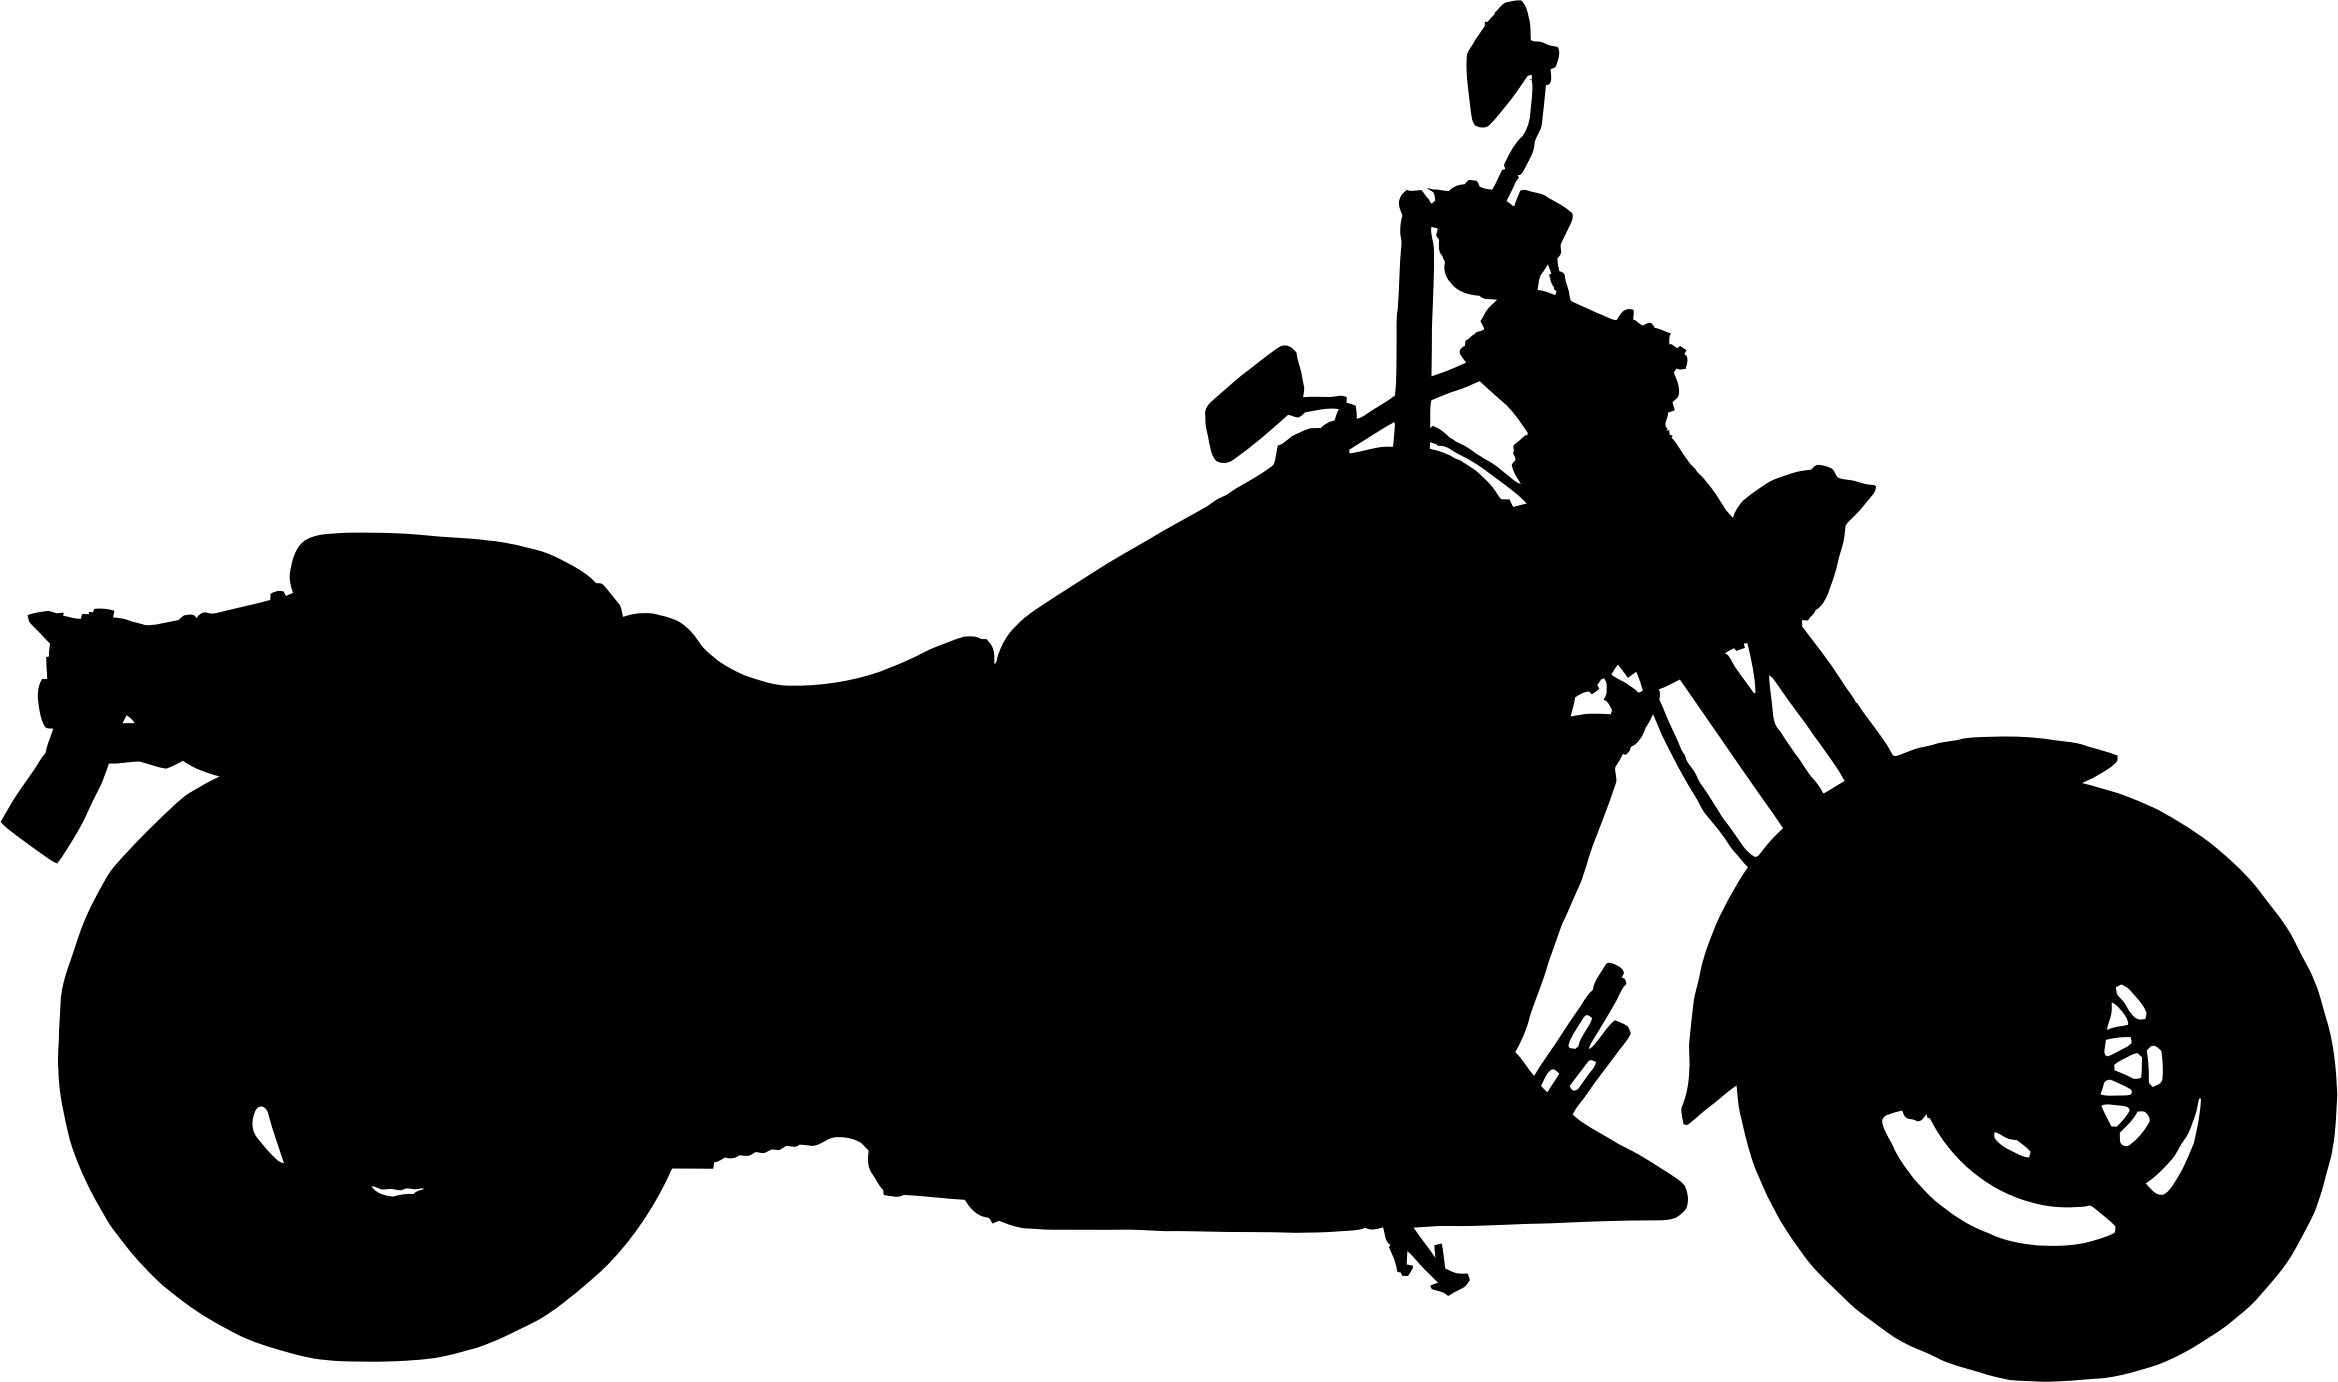 Heavy-Duty-Motorcycle-Silhouette